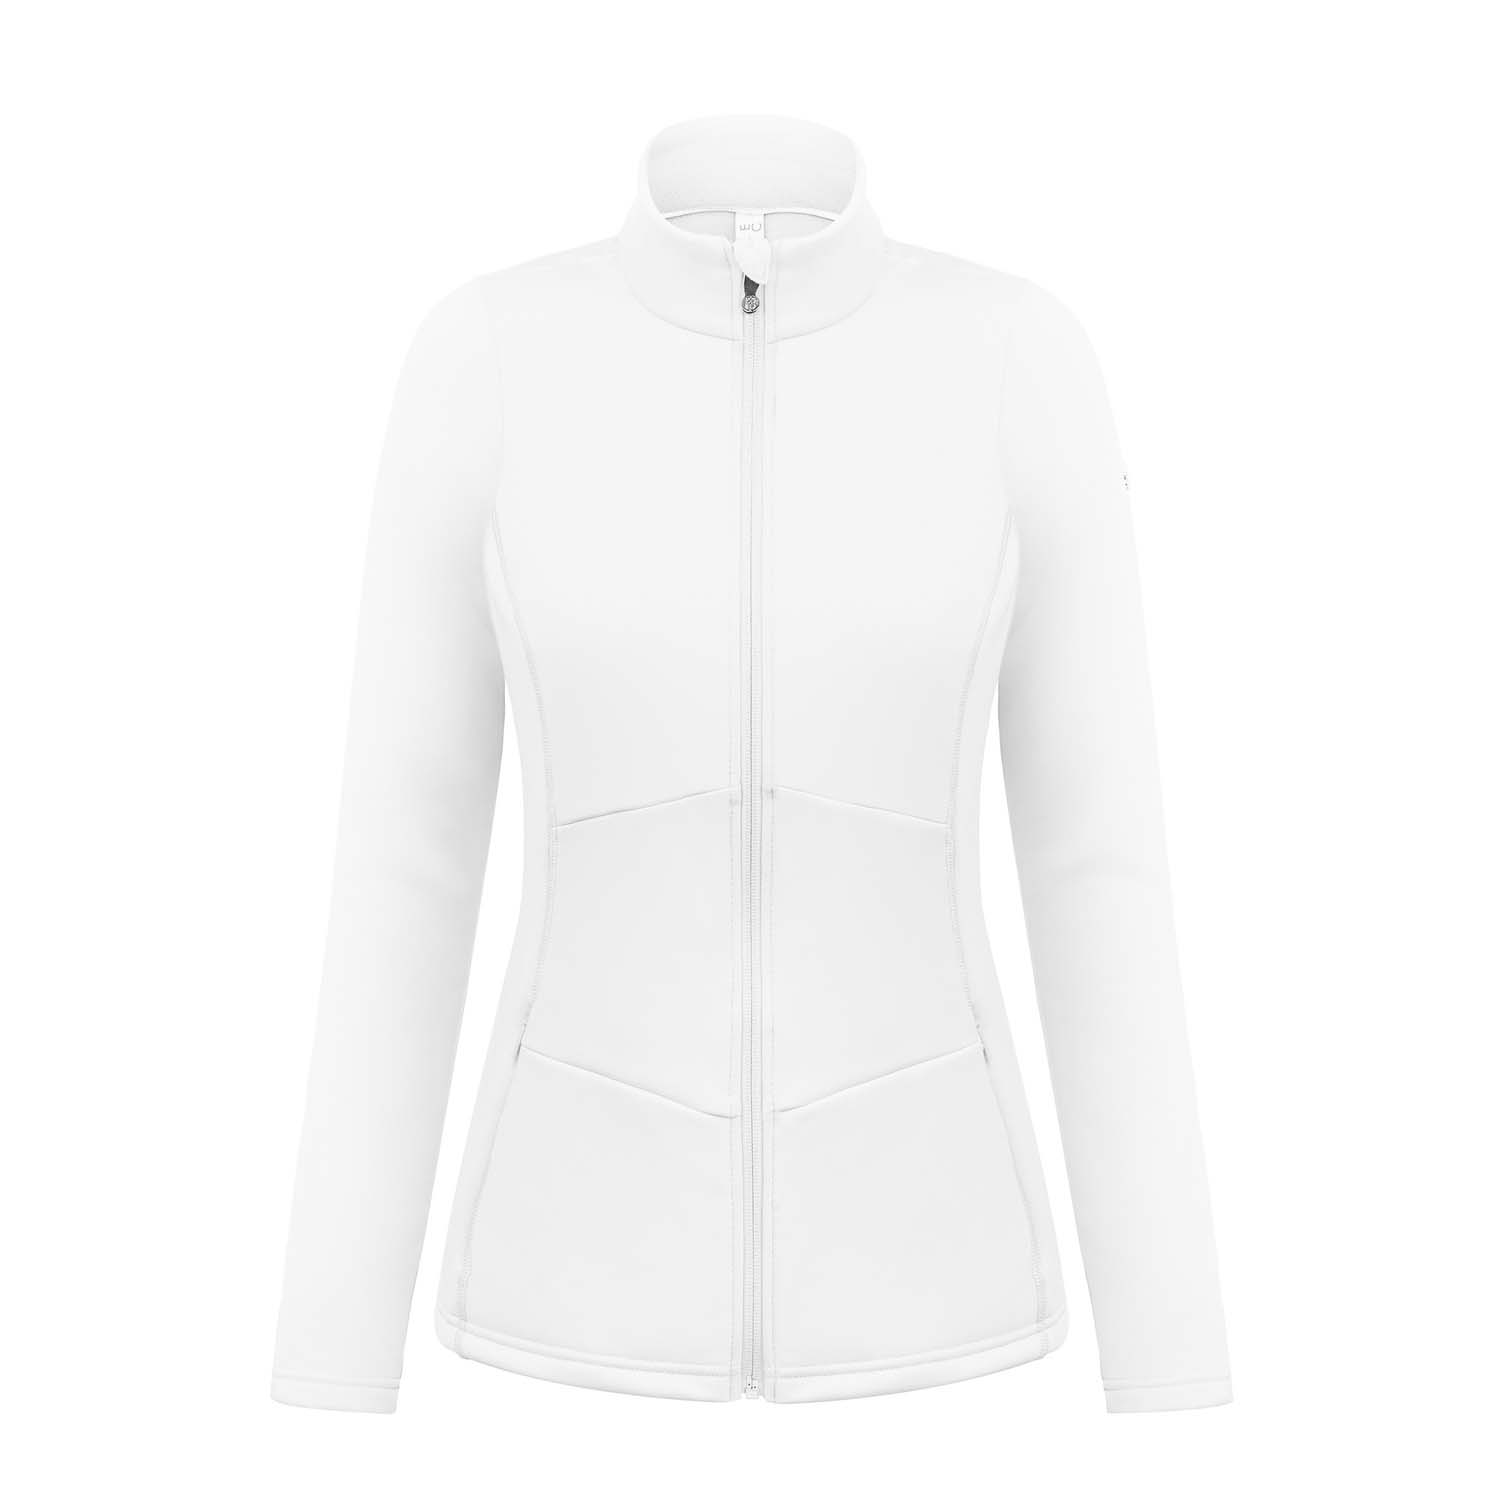 Poivre Blanc Stretch Fleece White 2020